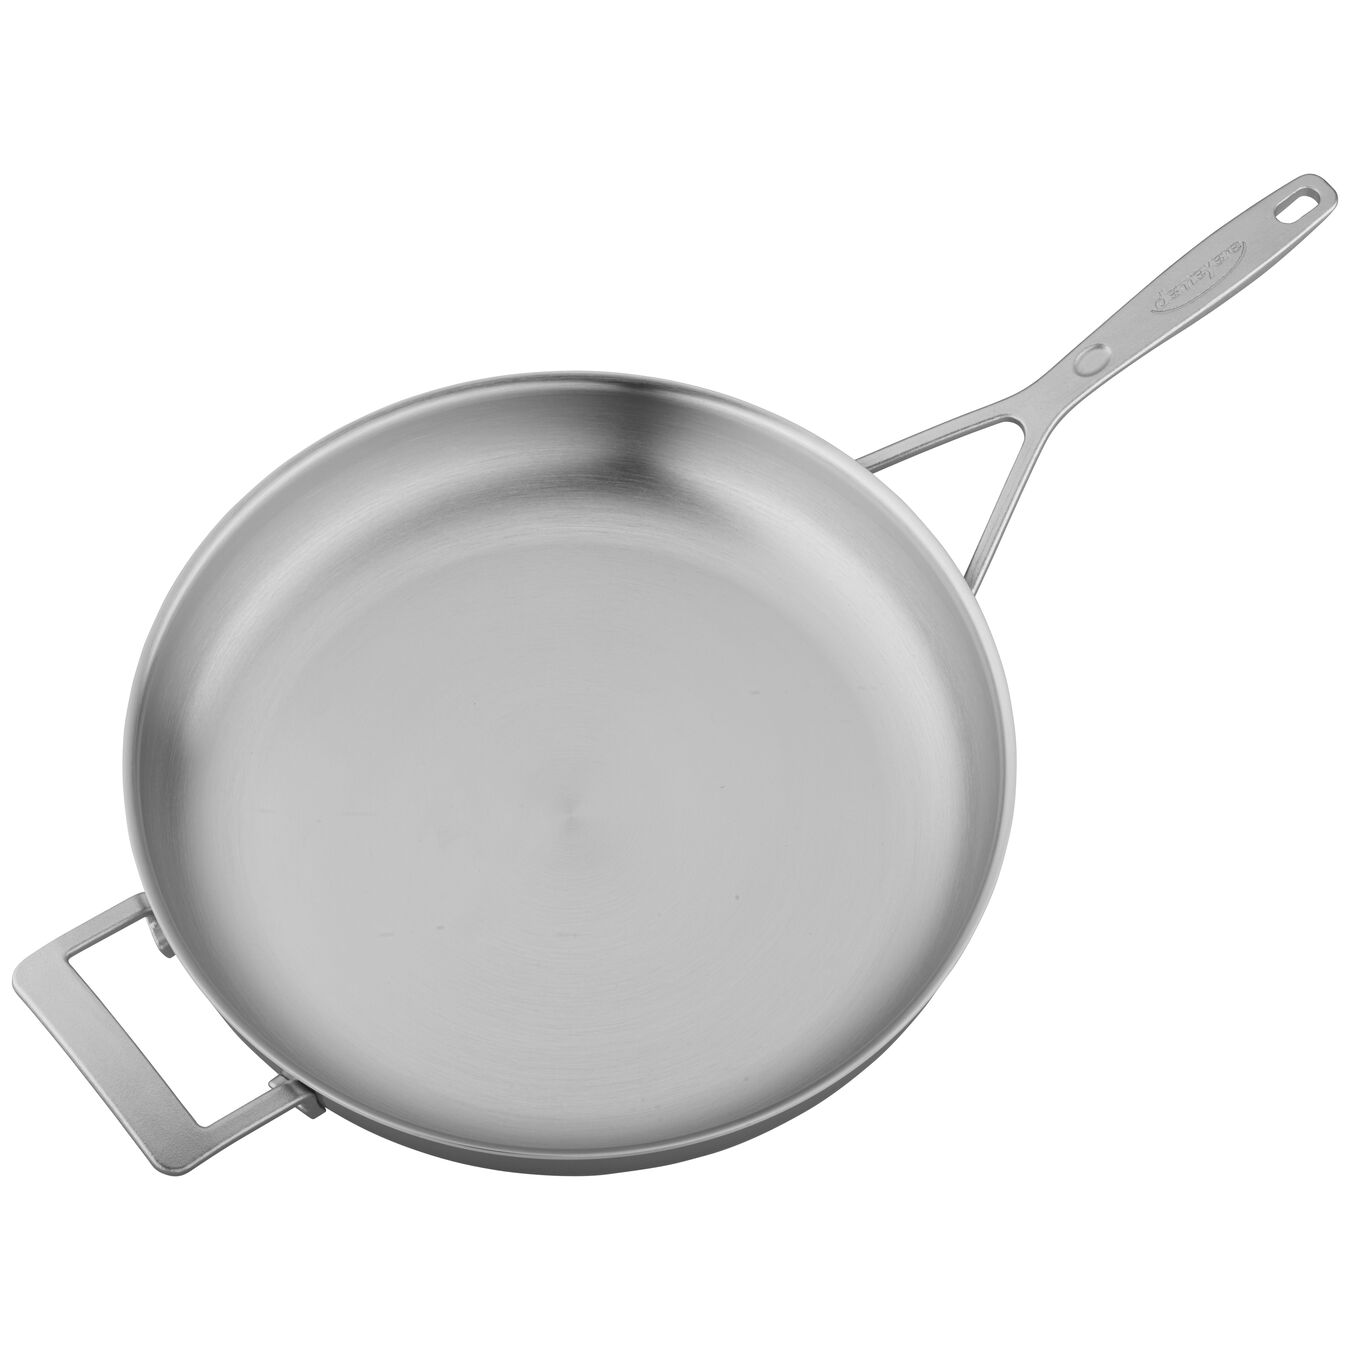 32 cm / 12.5 inch 18/10 Stainless Steel Frying pan,,large 4